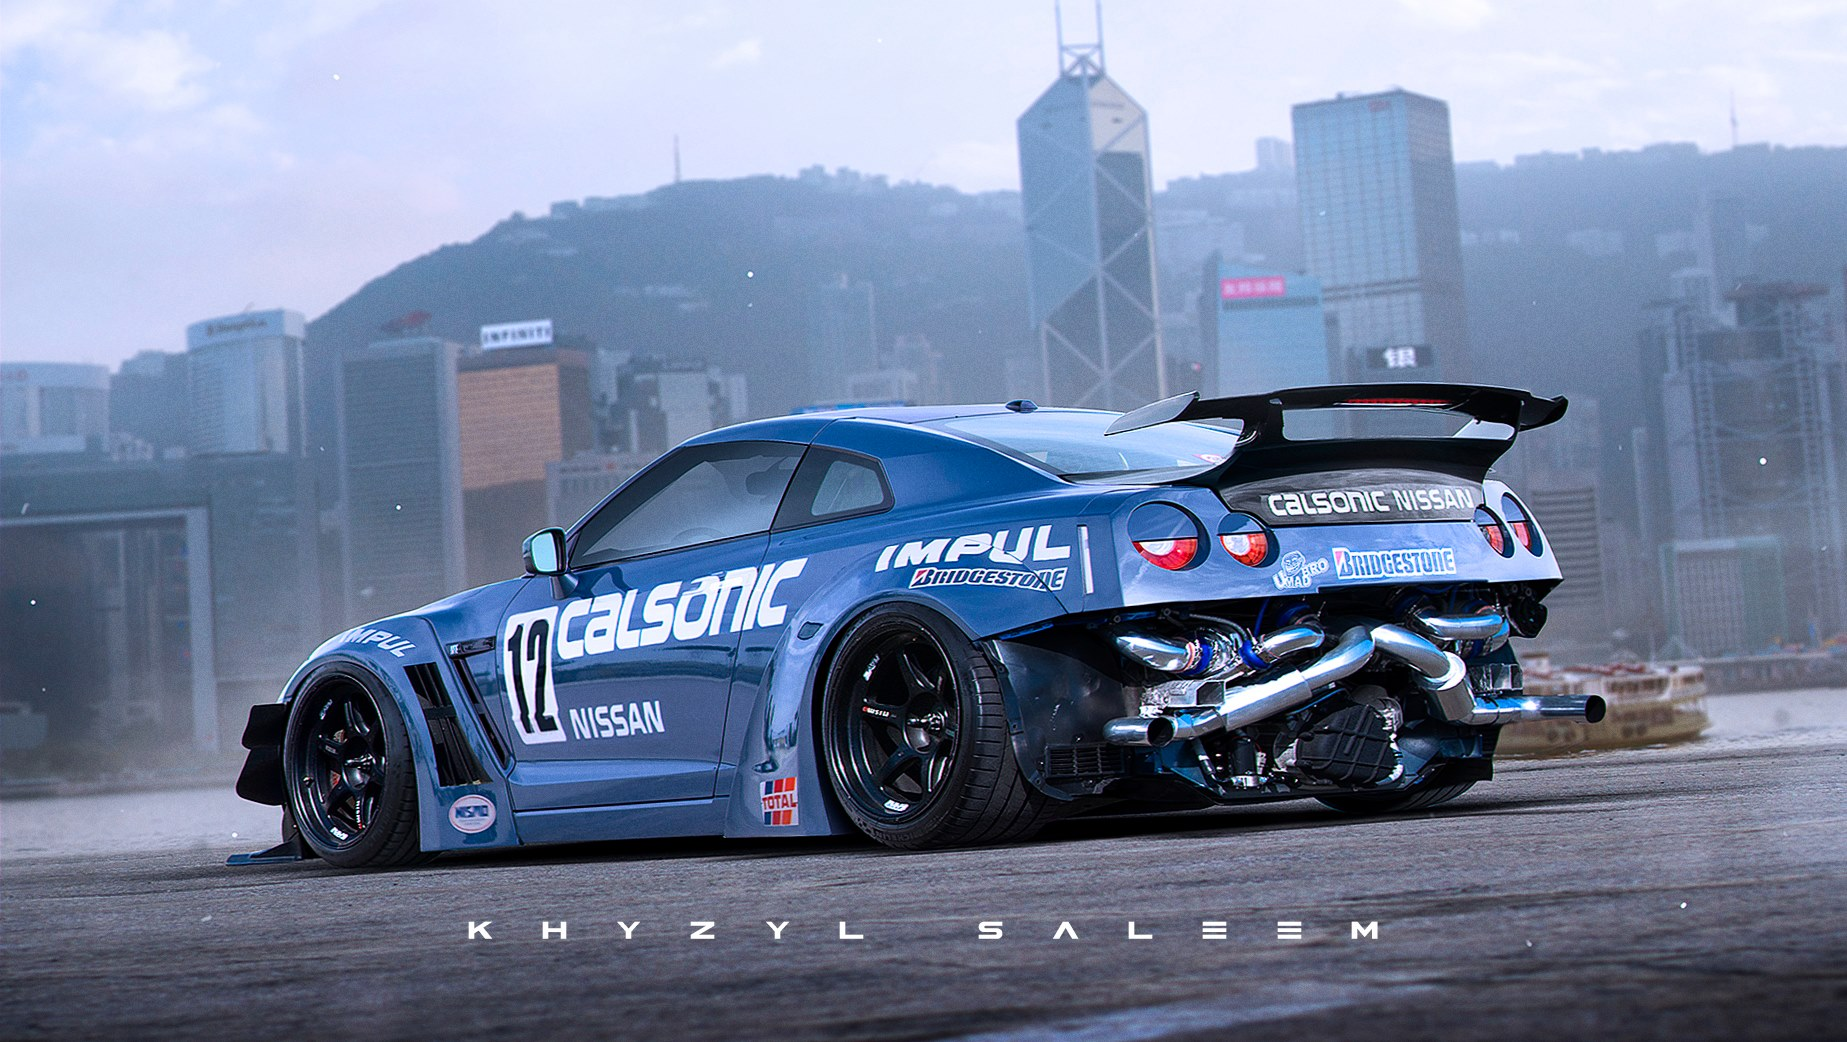 Nissan Gt R Drift Car With Exposed Rear Mounted Turbos Rendered